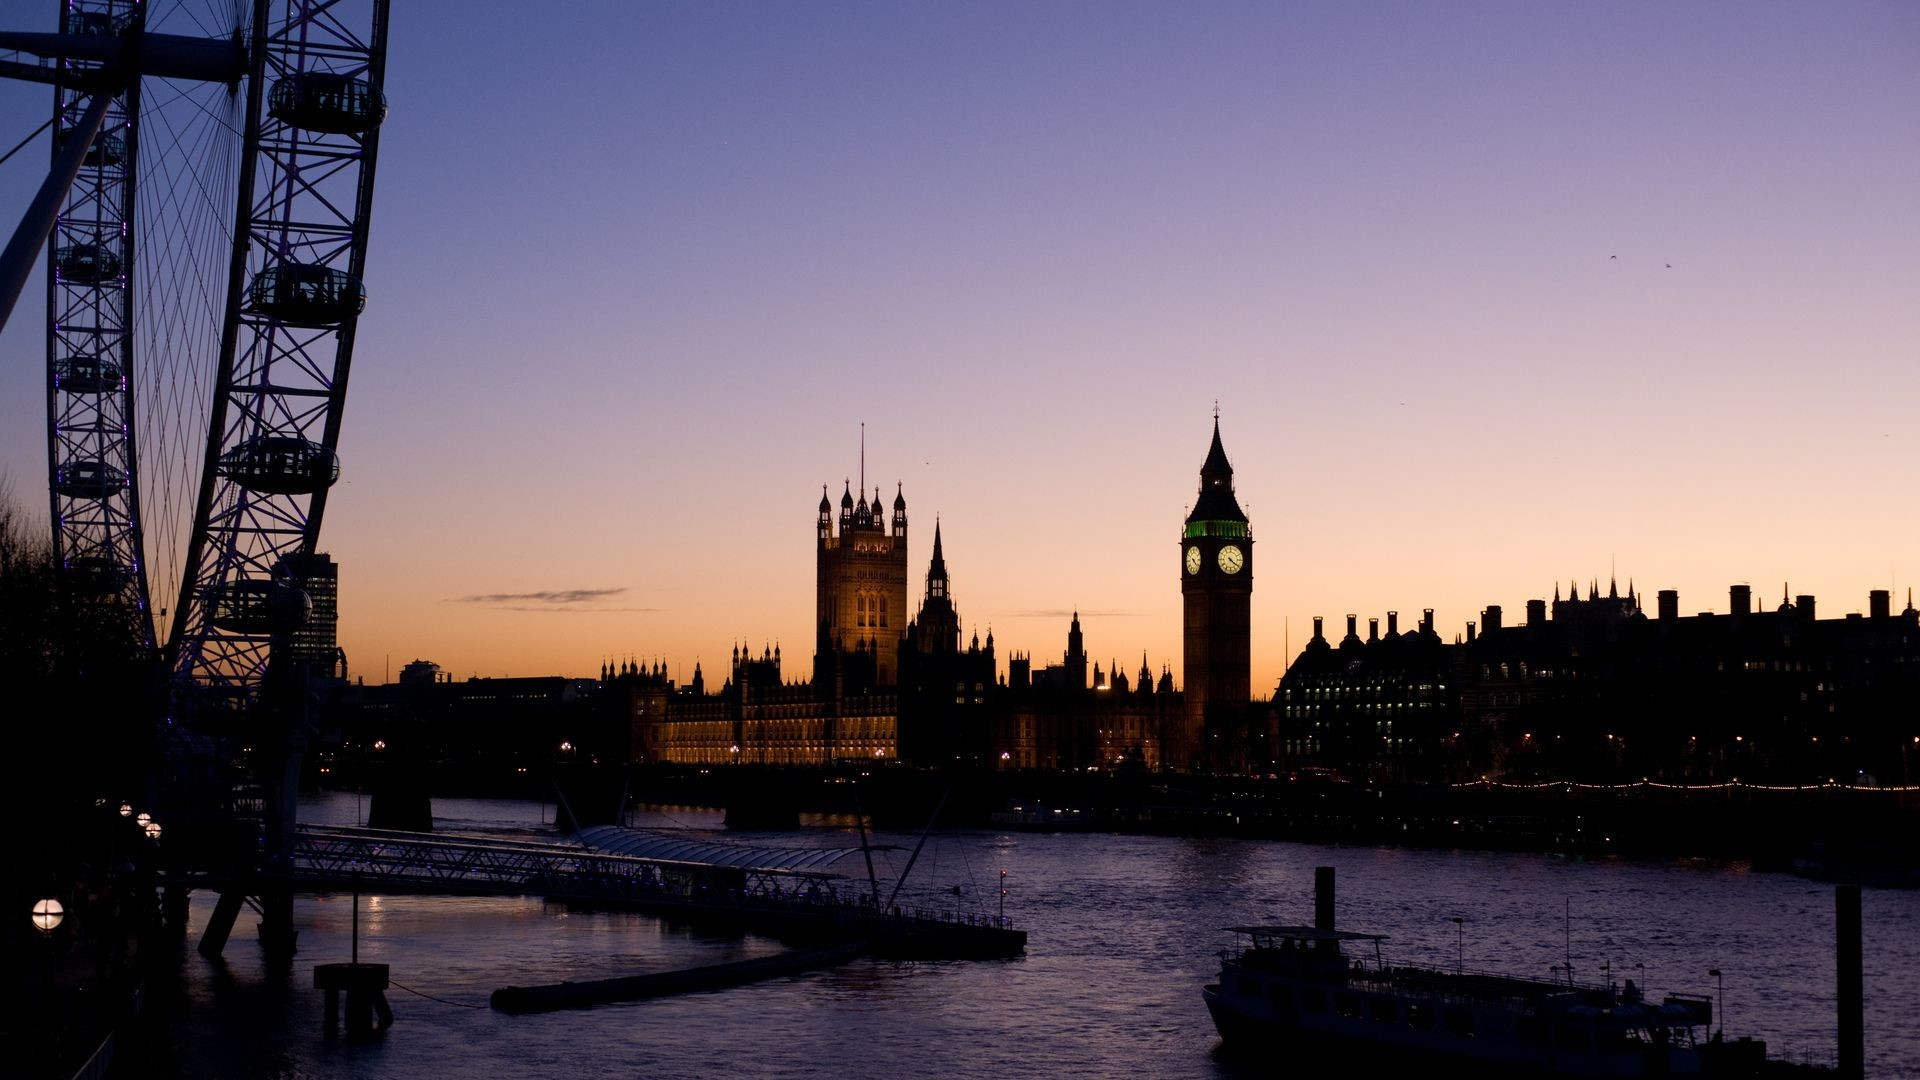 2048x1536 Download Stunning London City Building Wallpapers For Mobile